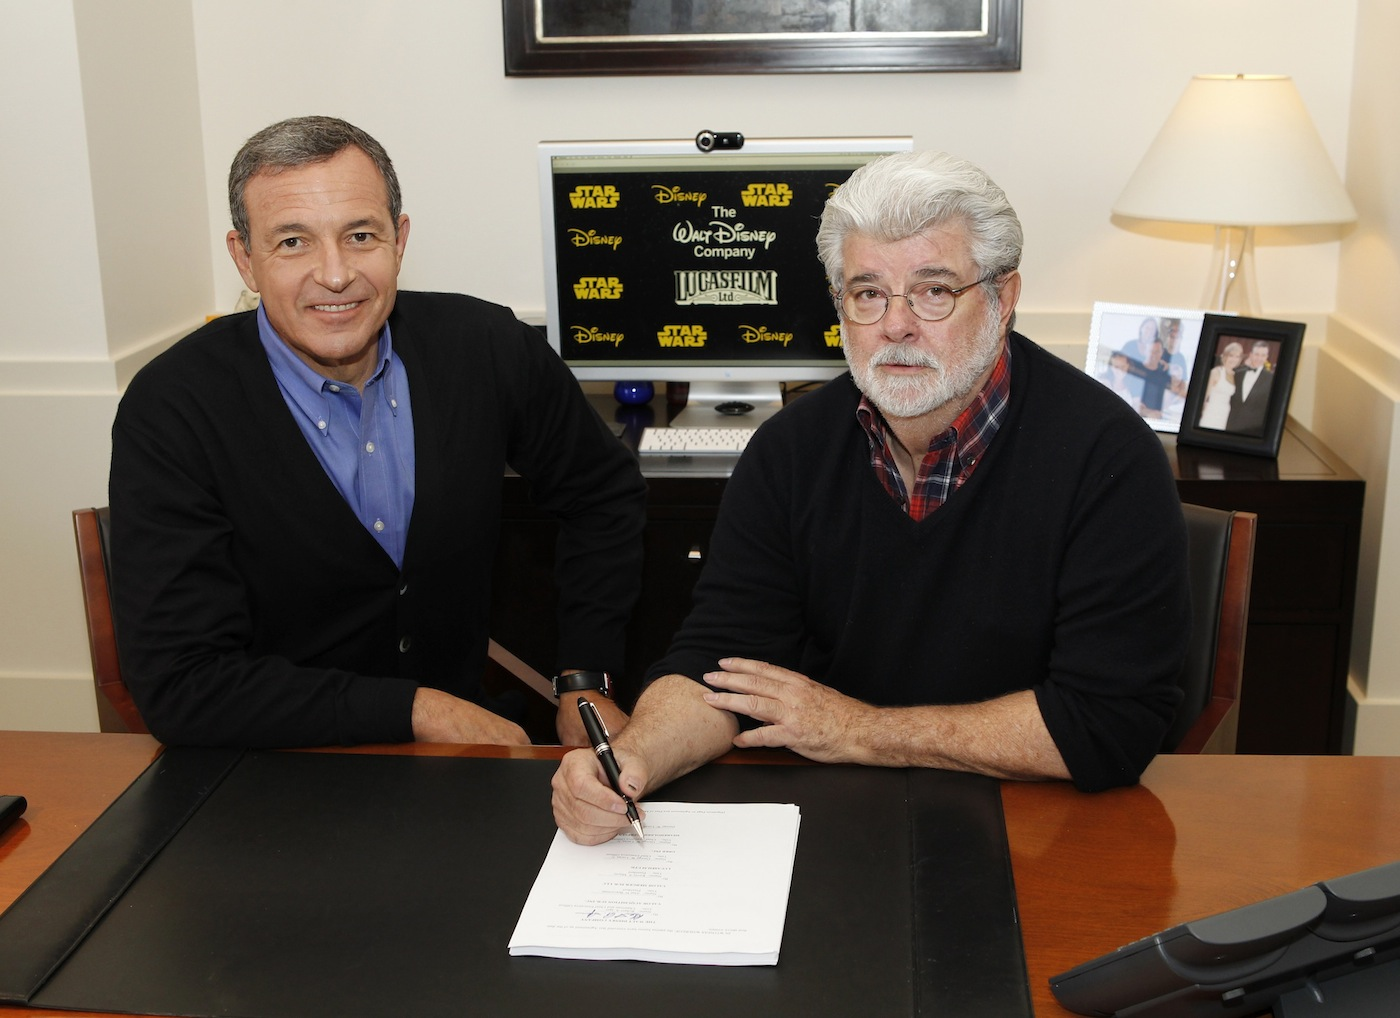 The Walt Disney Company President and CEO Robert A. Iger, left, meets with George Lucas. (photo by Rick Rowell/Disney)